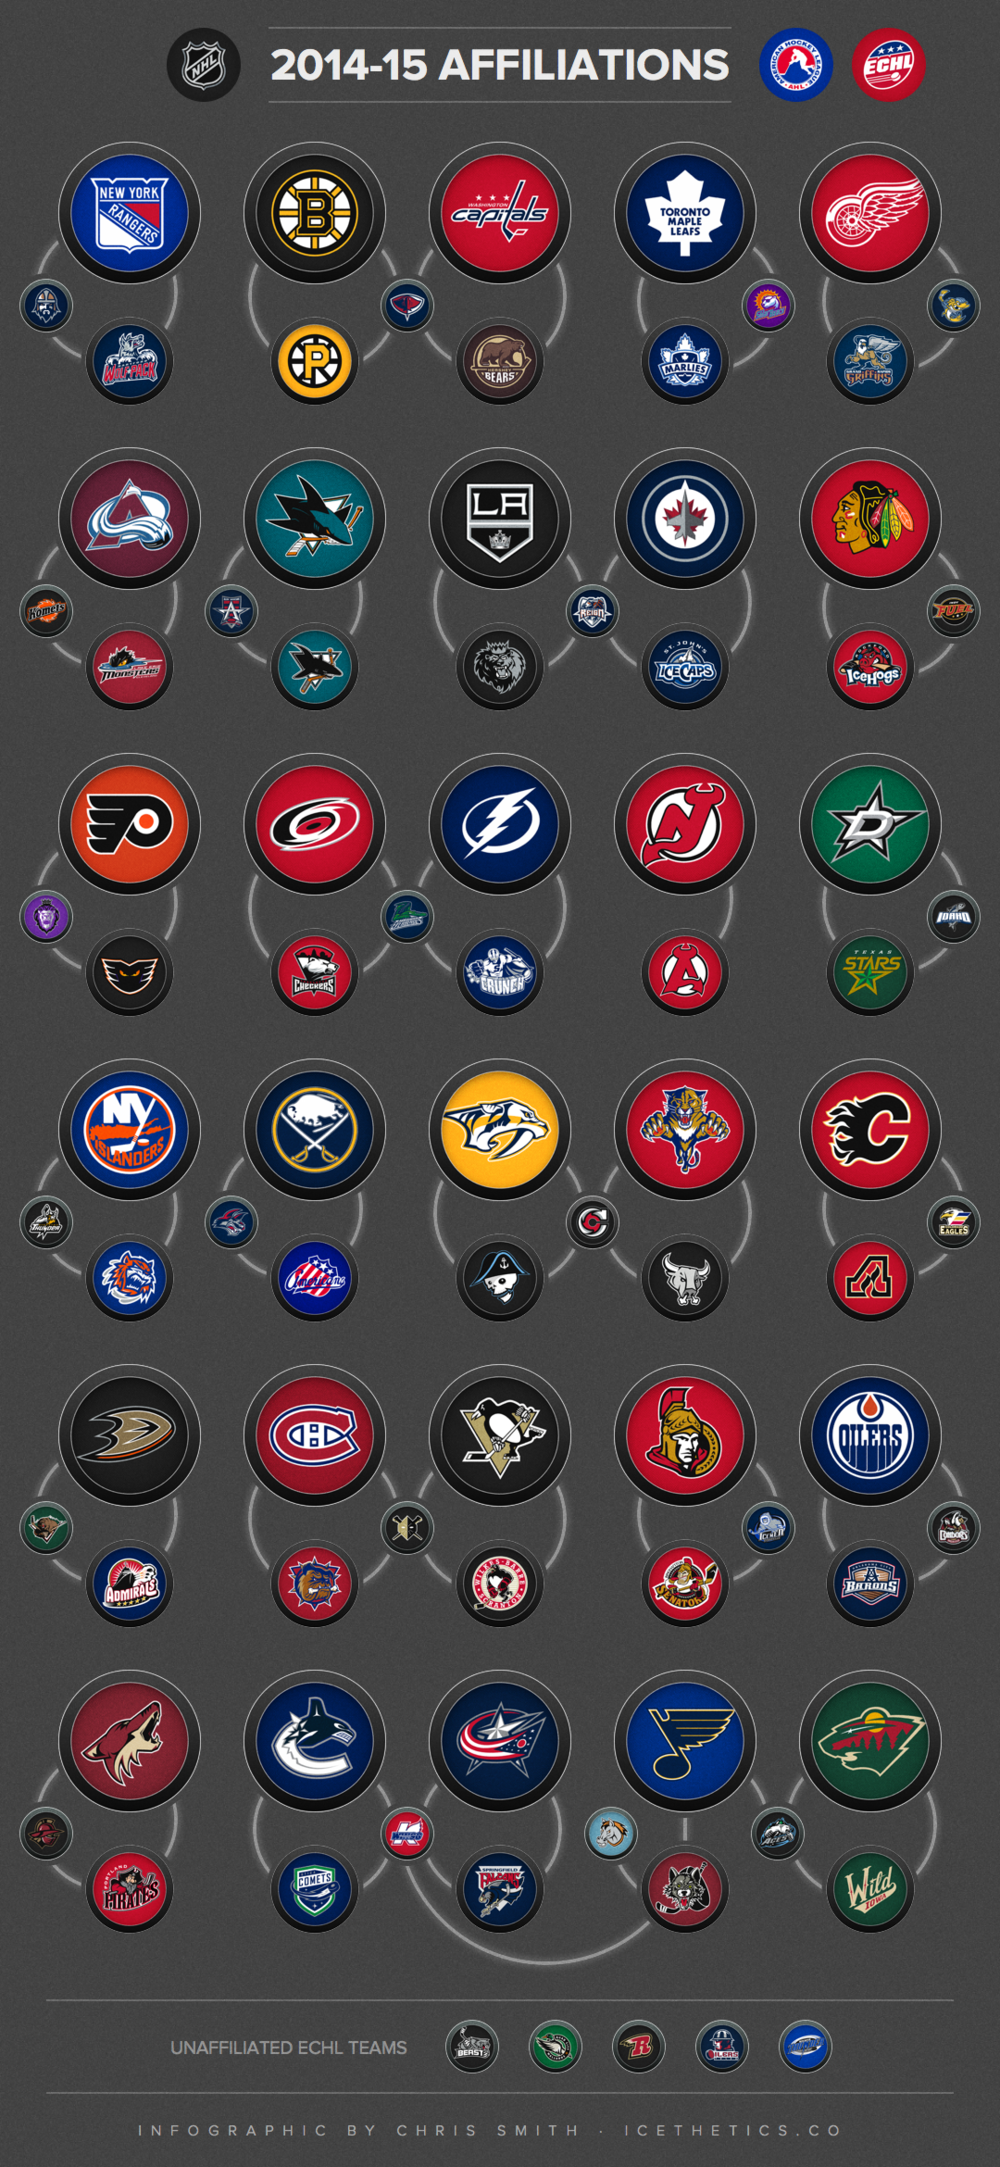 INFOGRAPHIC: Affiliations between NHL/AHL/ECHL/CHL teams in 2014-15 Click here to download full size.